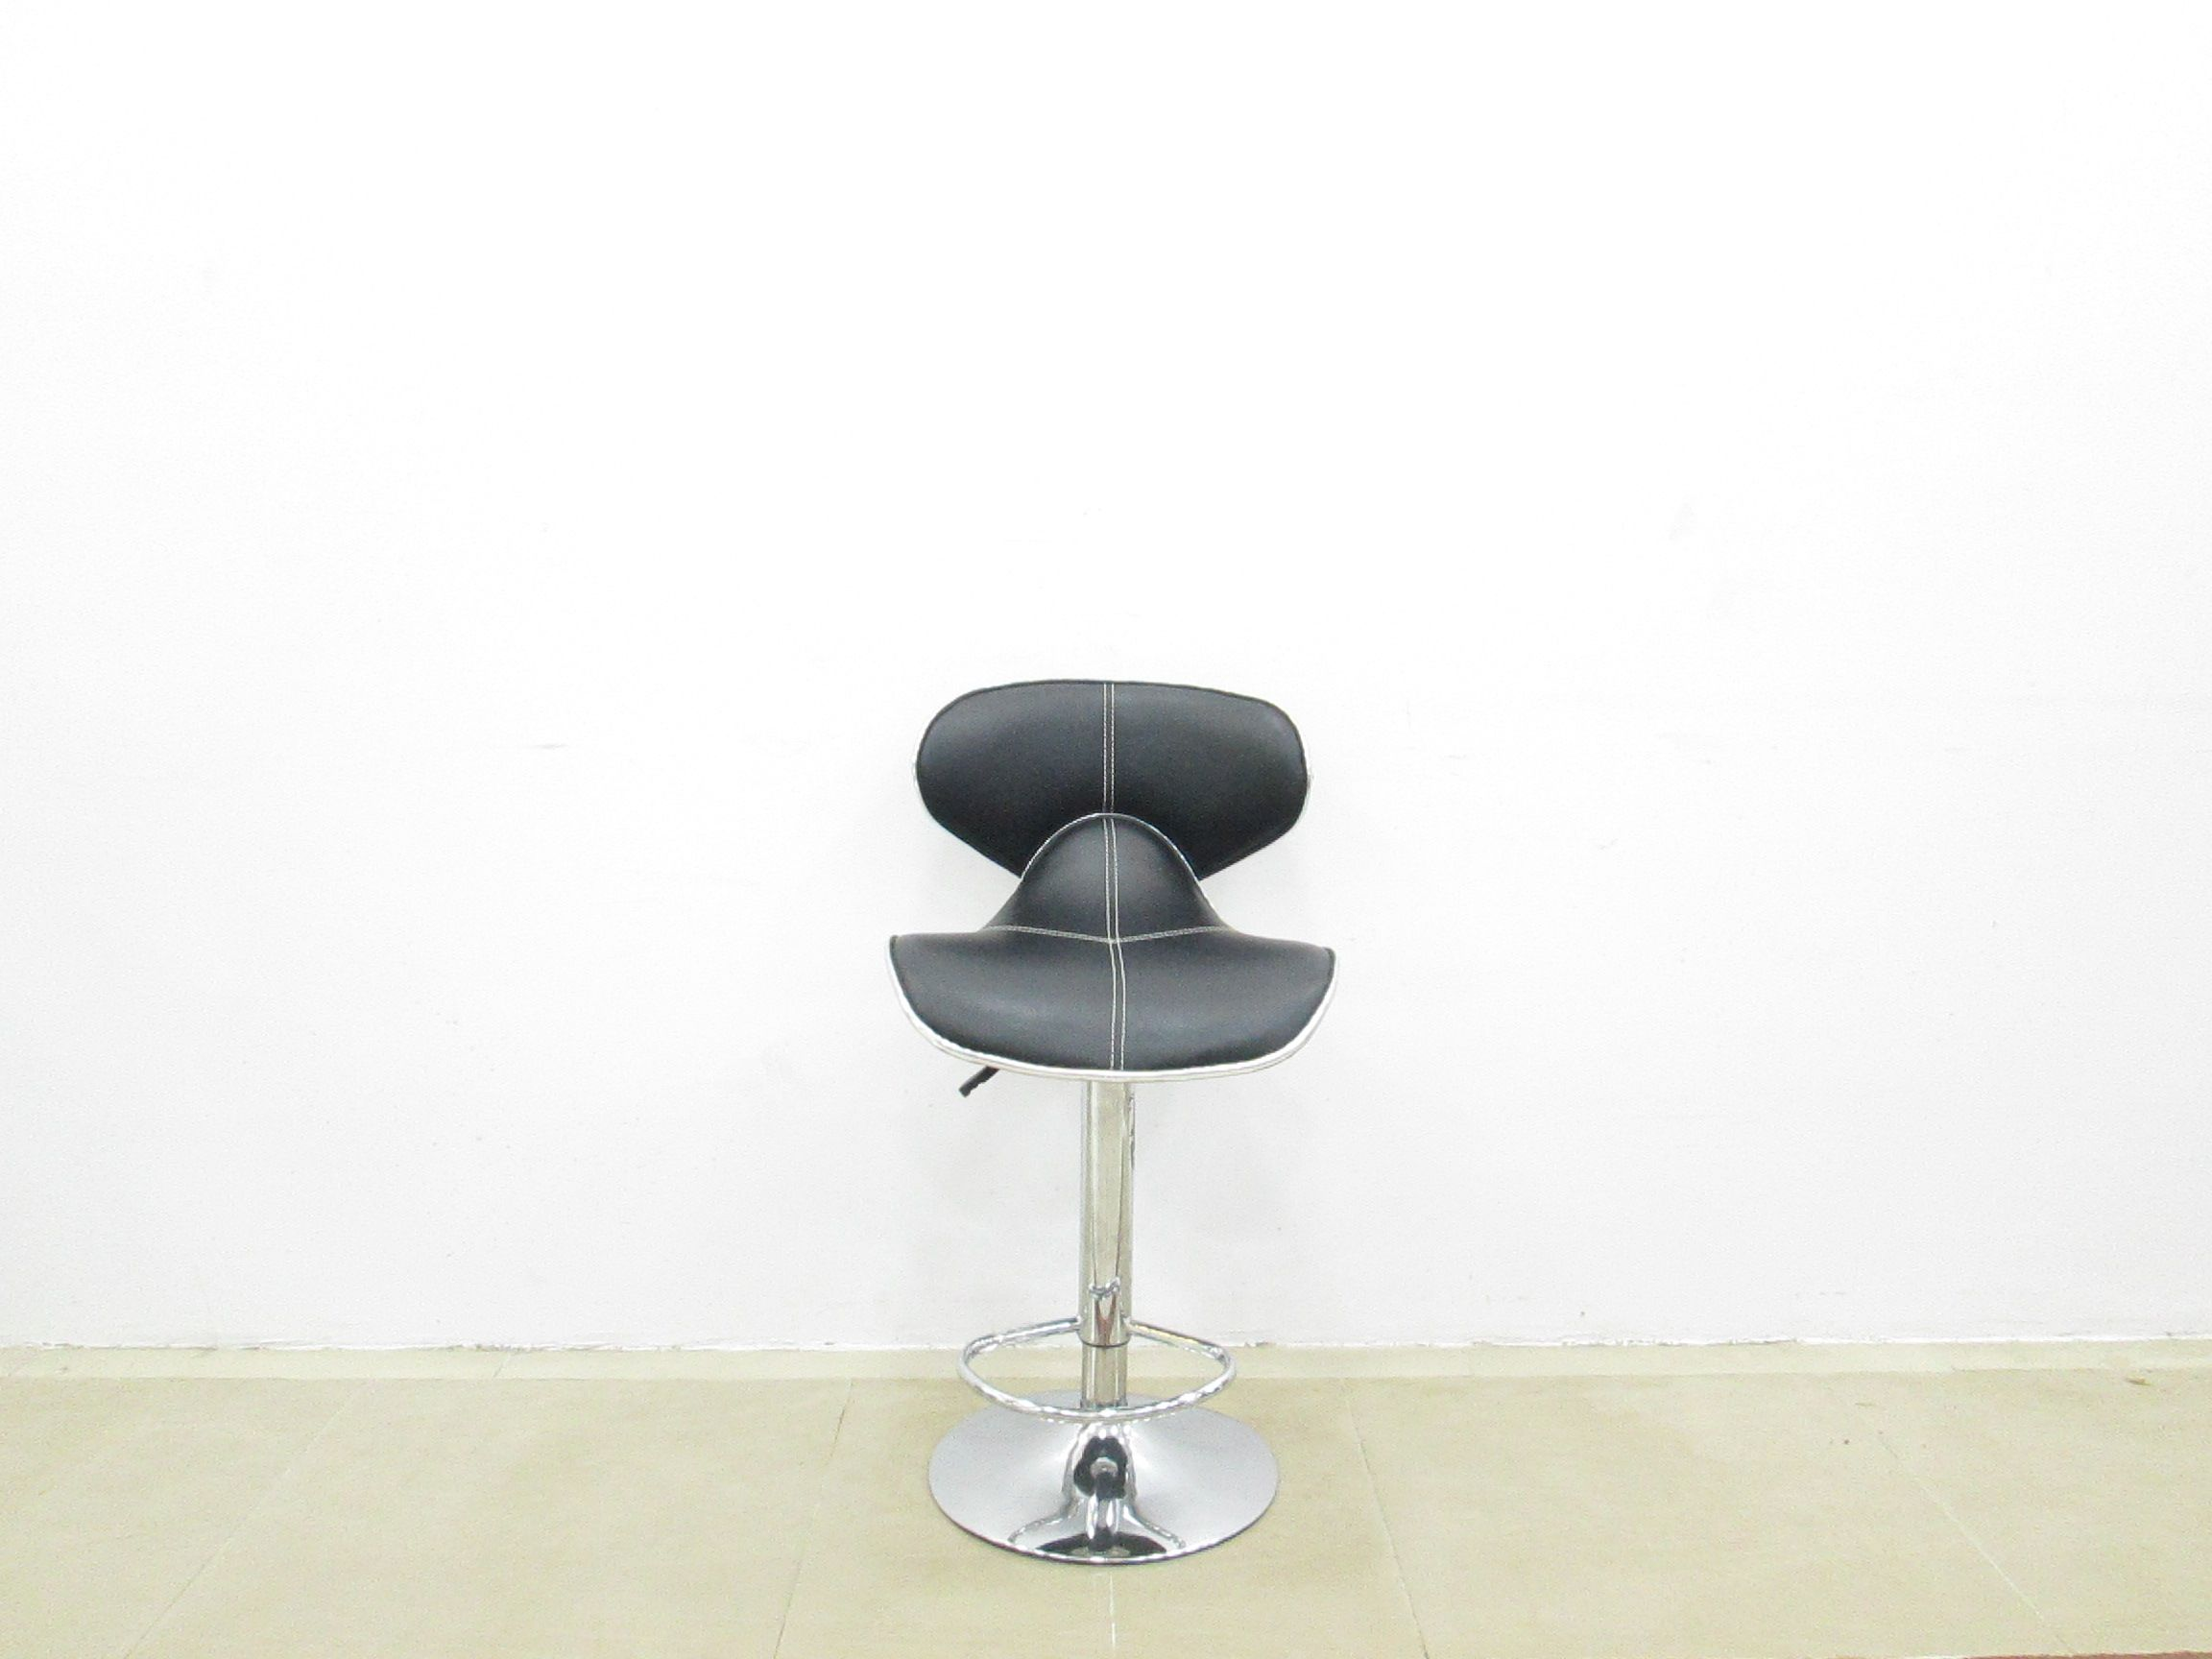 Are you looking for bar chairsstool chairbar benchbar